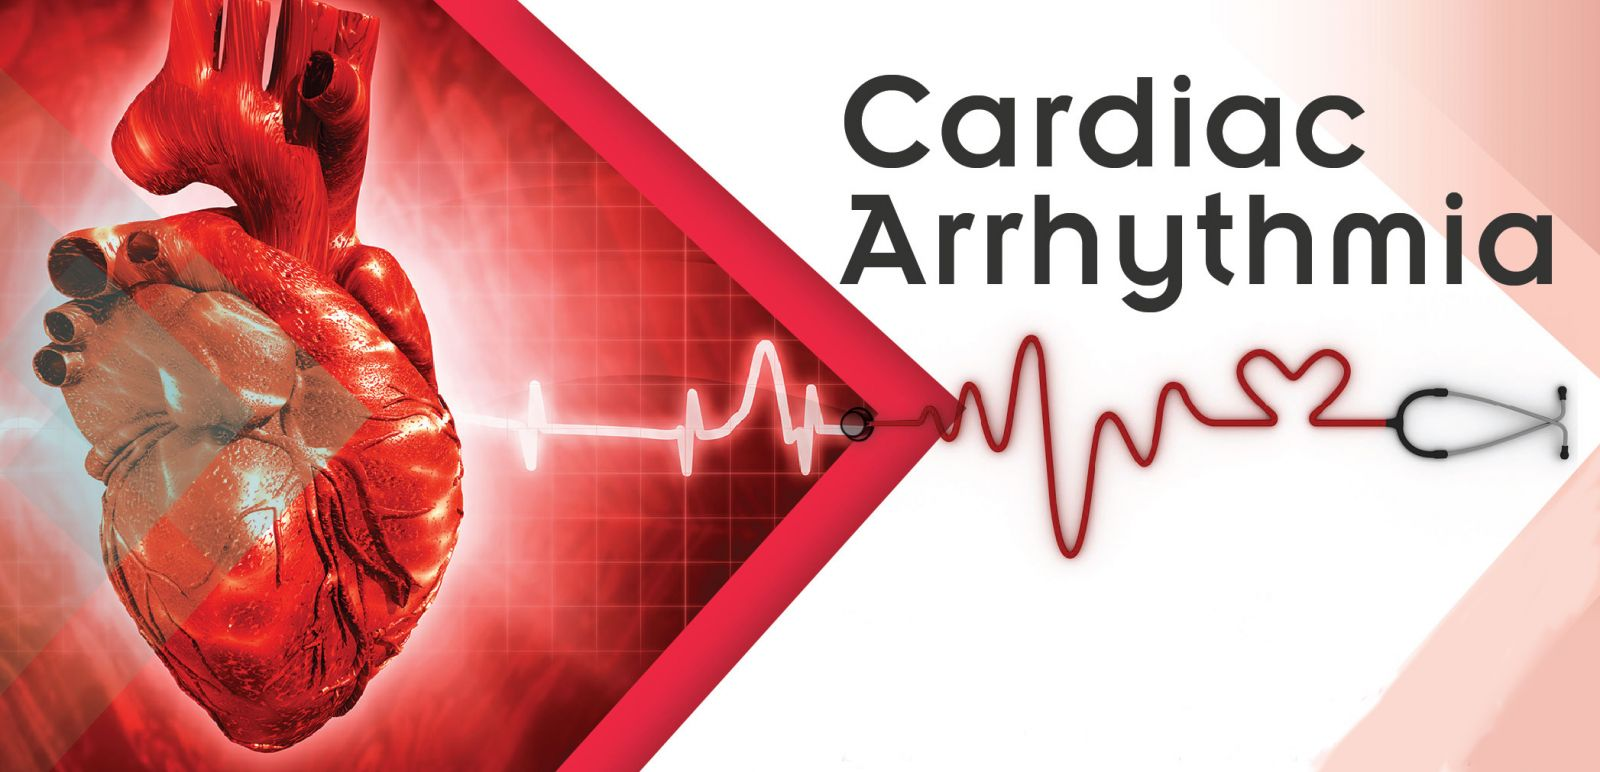 Research On Arrhythmia Could Reduce The Risk Of Sudden Cardiac ...